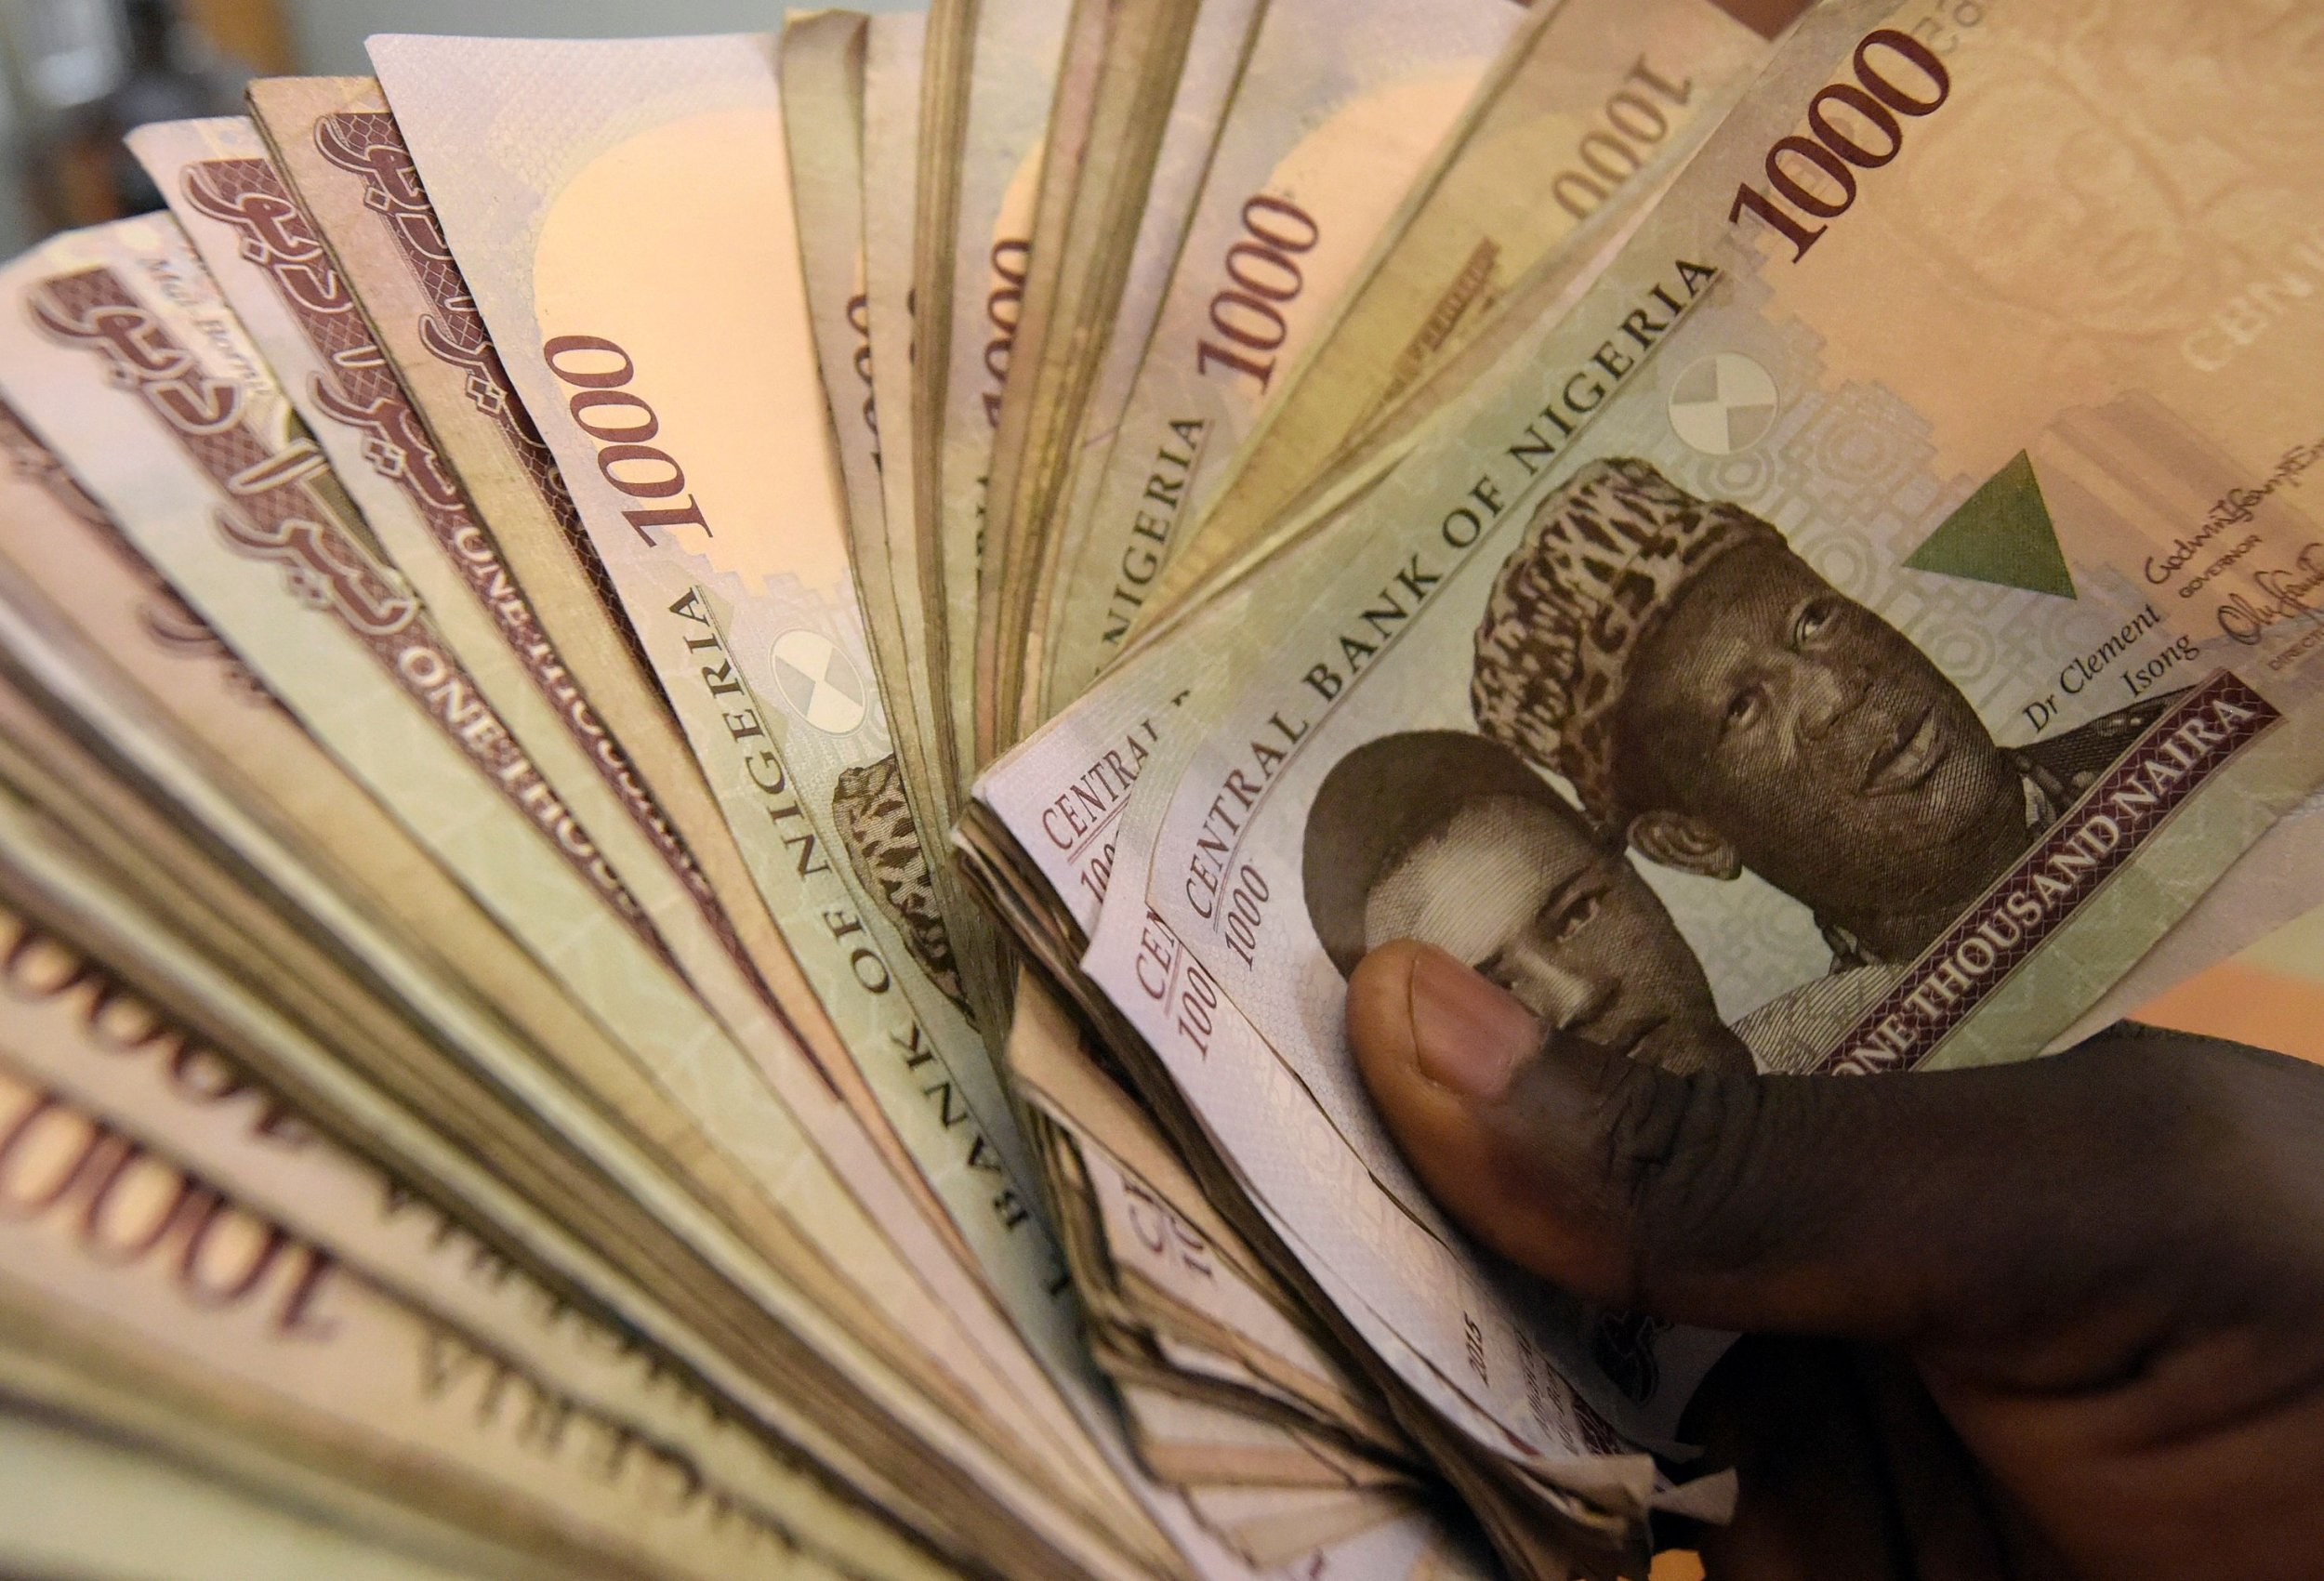 1 000 Naira Banknotes Nigeria S Currency Are Pictured In Lagos On January 29 2016 Pius Utomi Ekpei Afp Getty